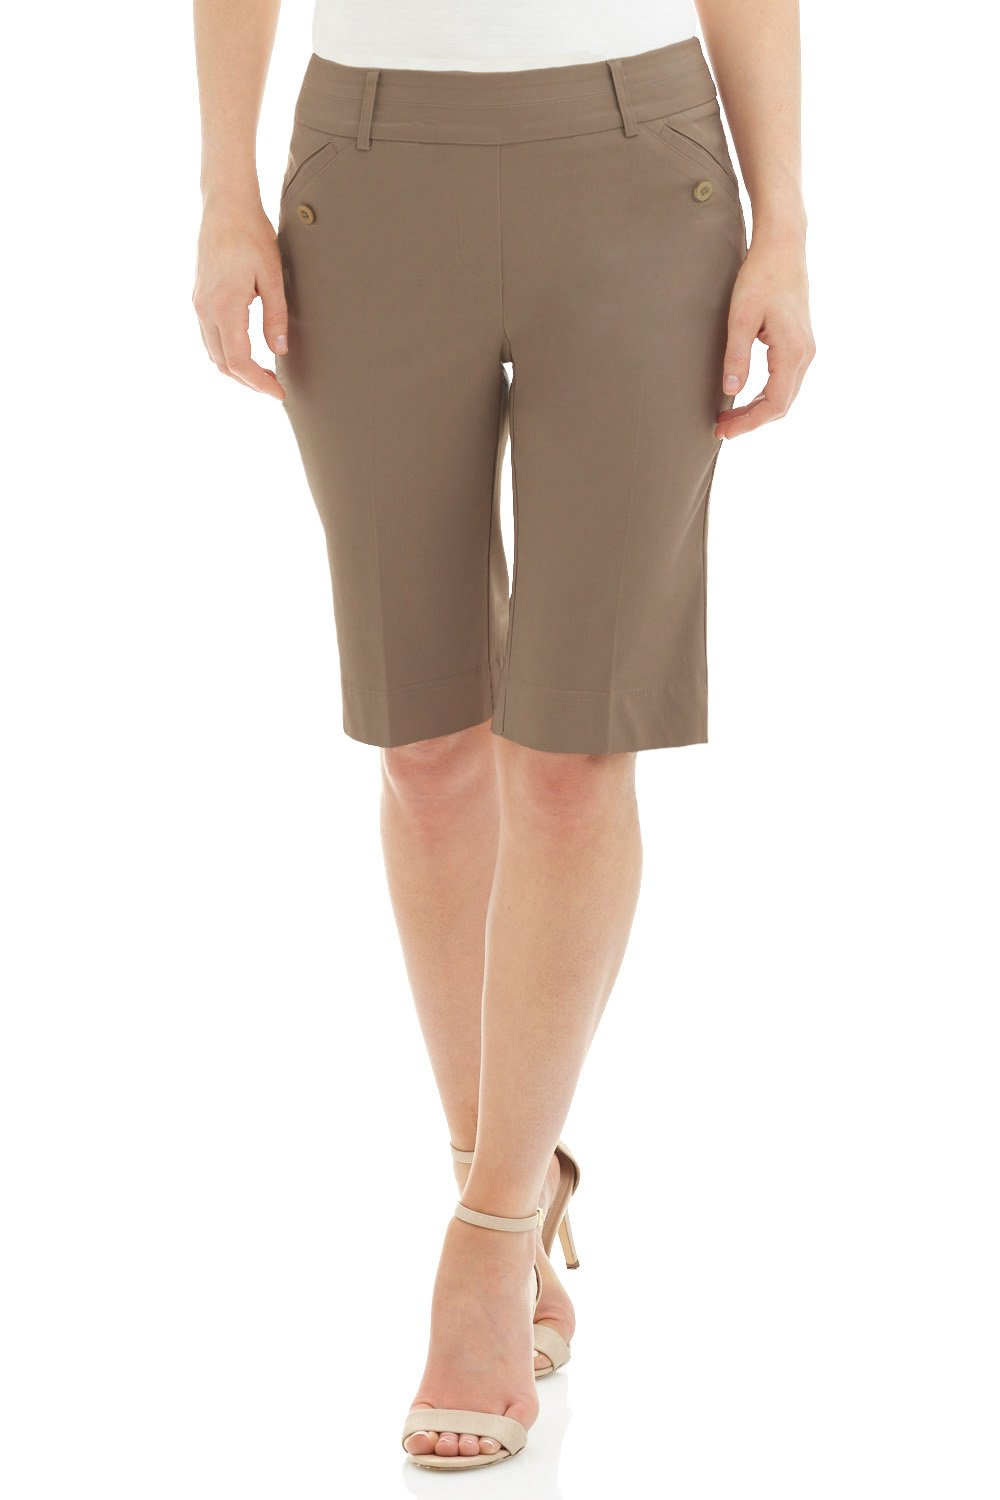 Rekucci Women's Ease in to Comfort Fit Modern Pull On Bermuda Short with Pockets (14,Oatmeal)